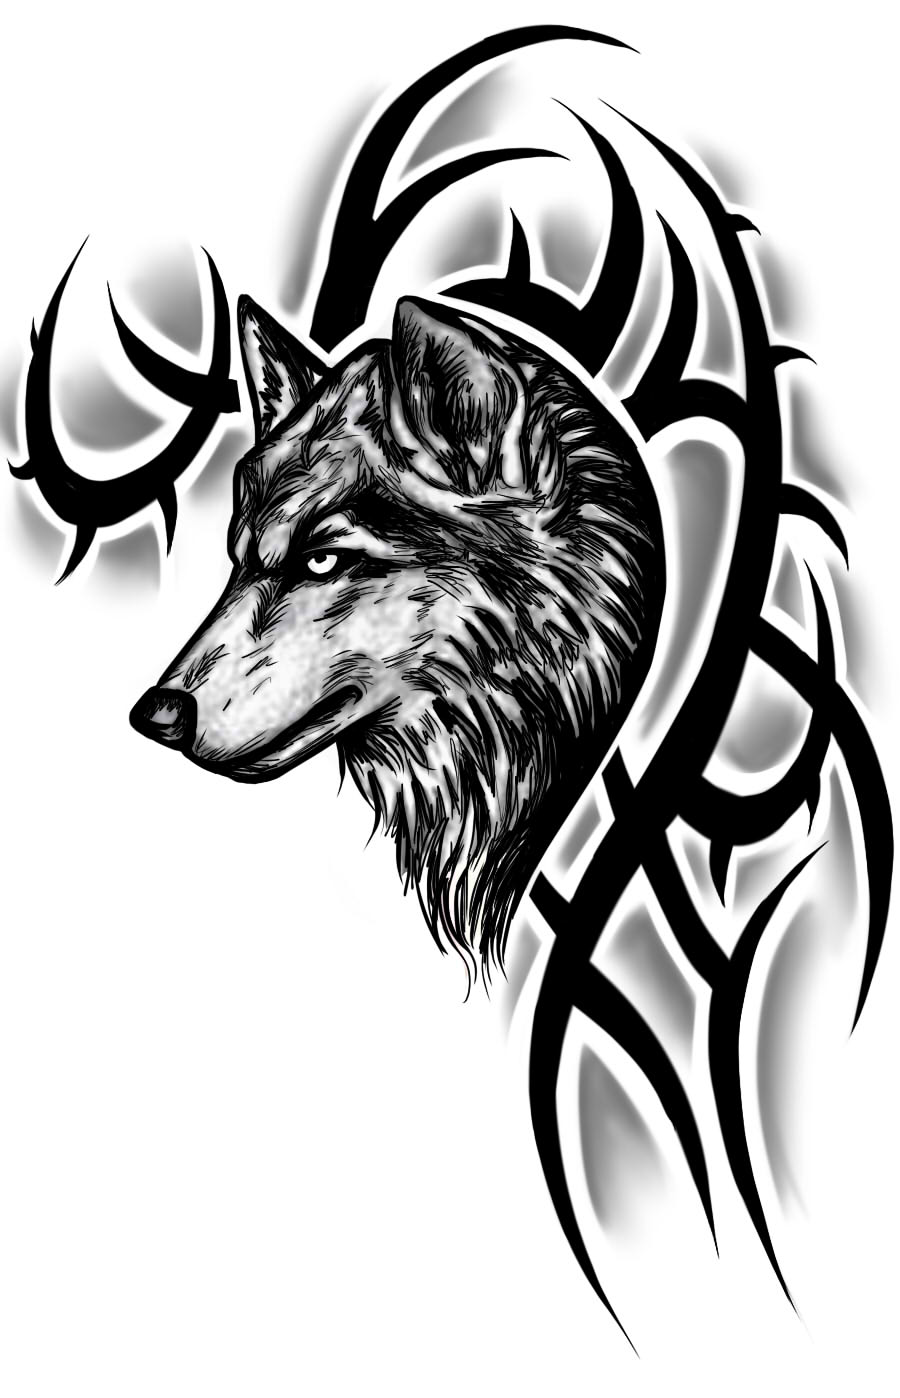 Wolf Tattoos Designs Ideas and